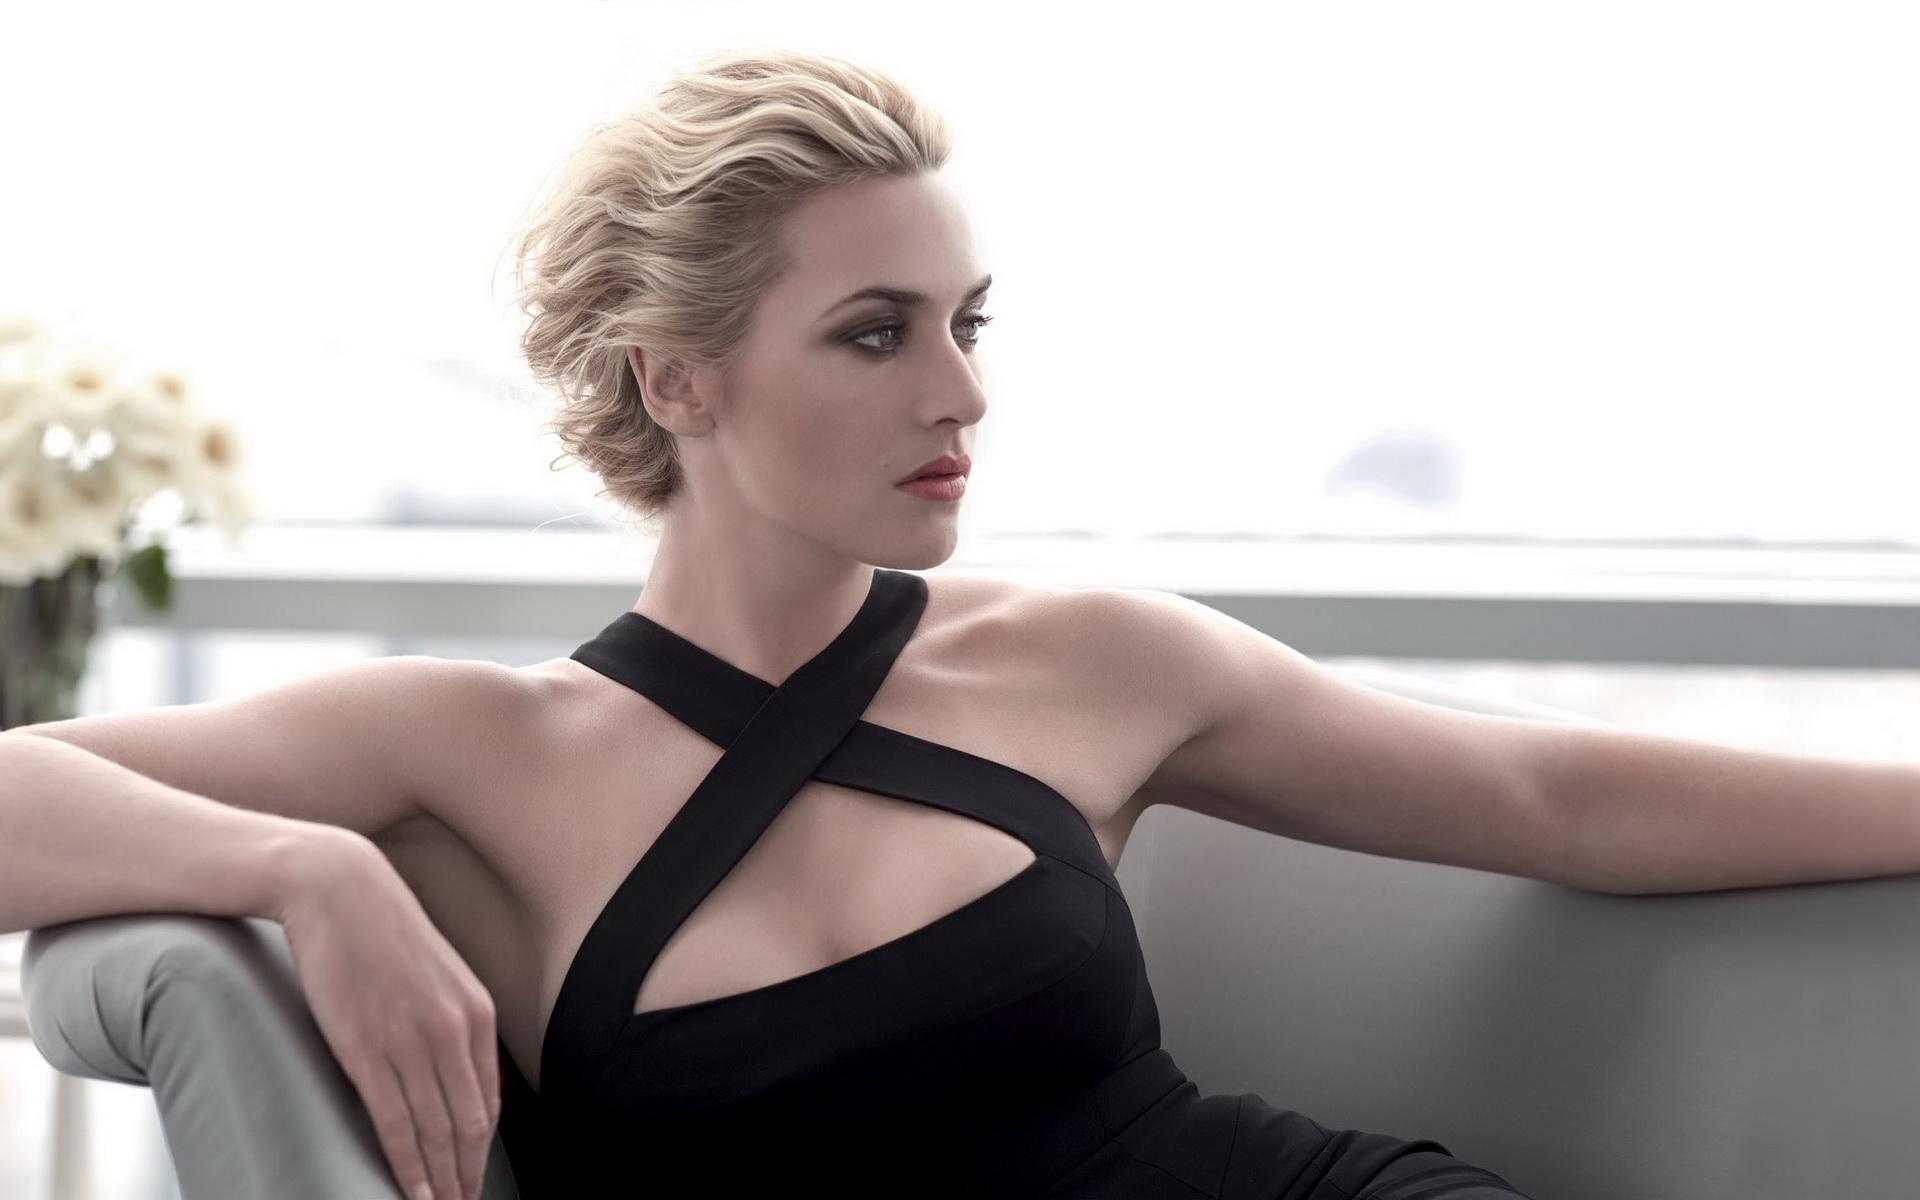 kate winslet celebrity hd wallpaper 51143